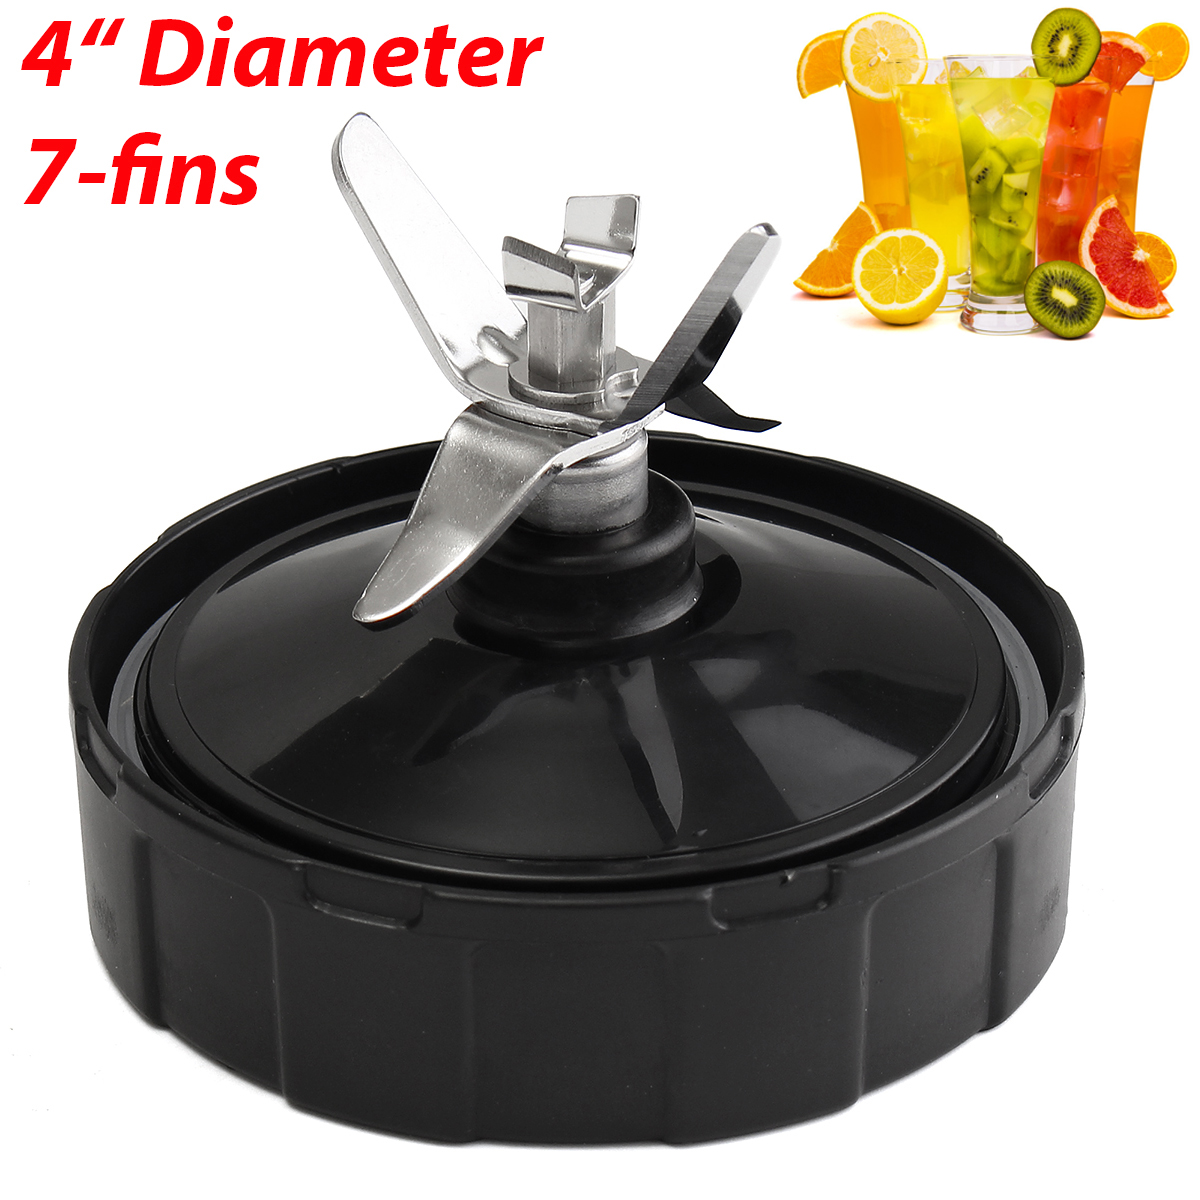 7 Fins Plastic Metal Extractor for Cross Blade Assembly Only for Nutri Ninja Blender 1000W Home Kitchen Appliance Blender Parts